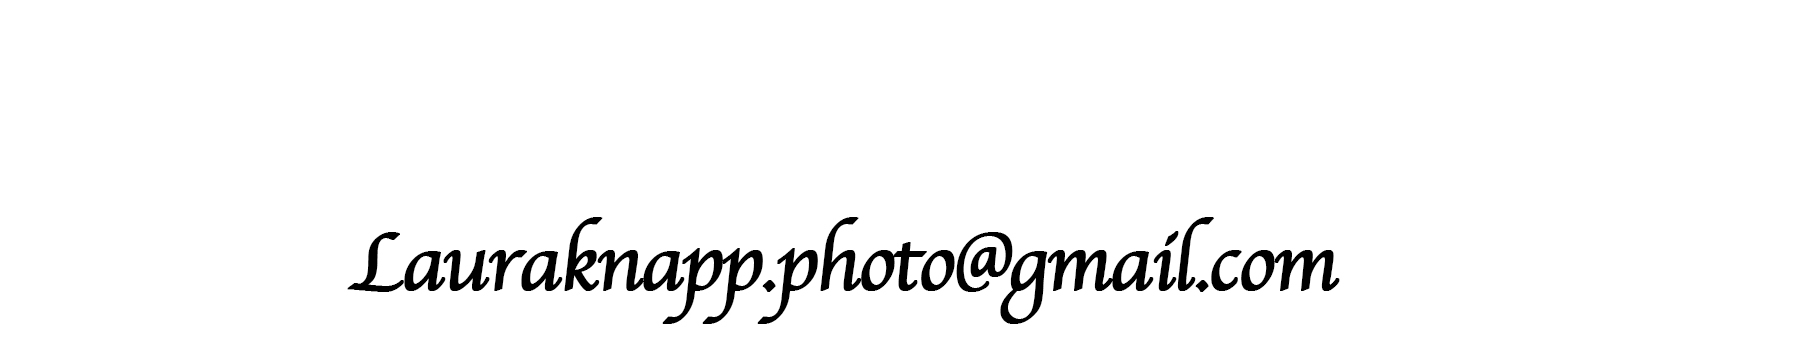 Please contact for portrait sessions and/or print purchasing inquiries.